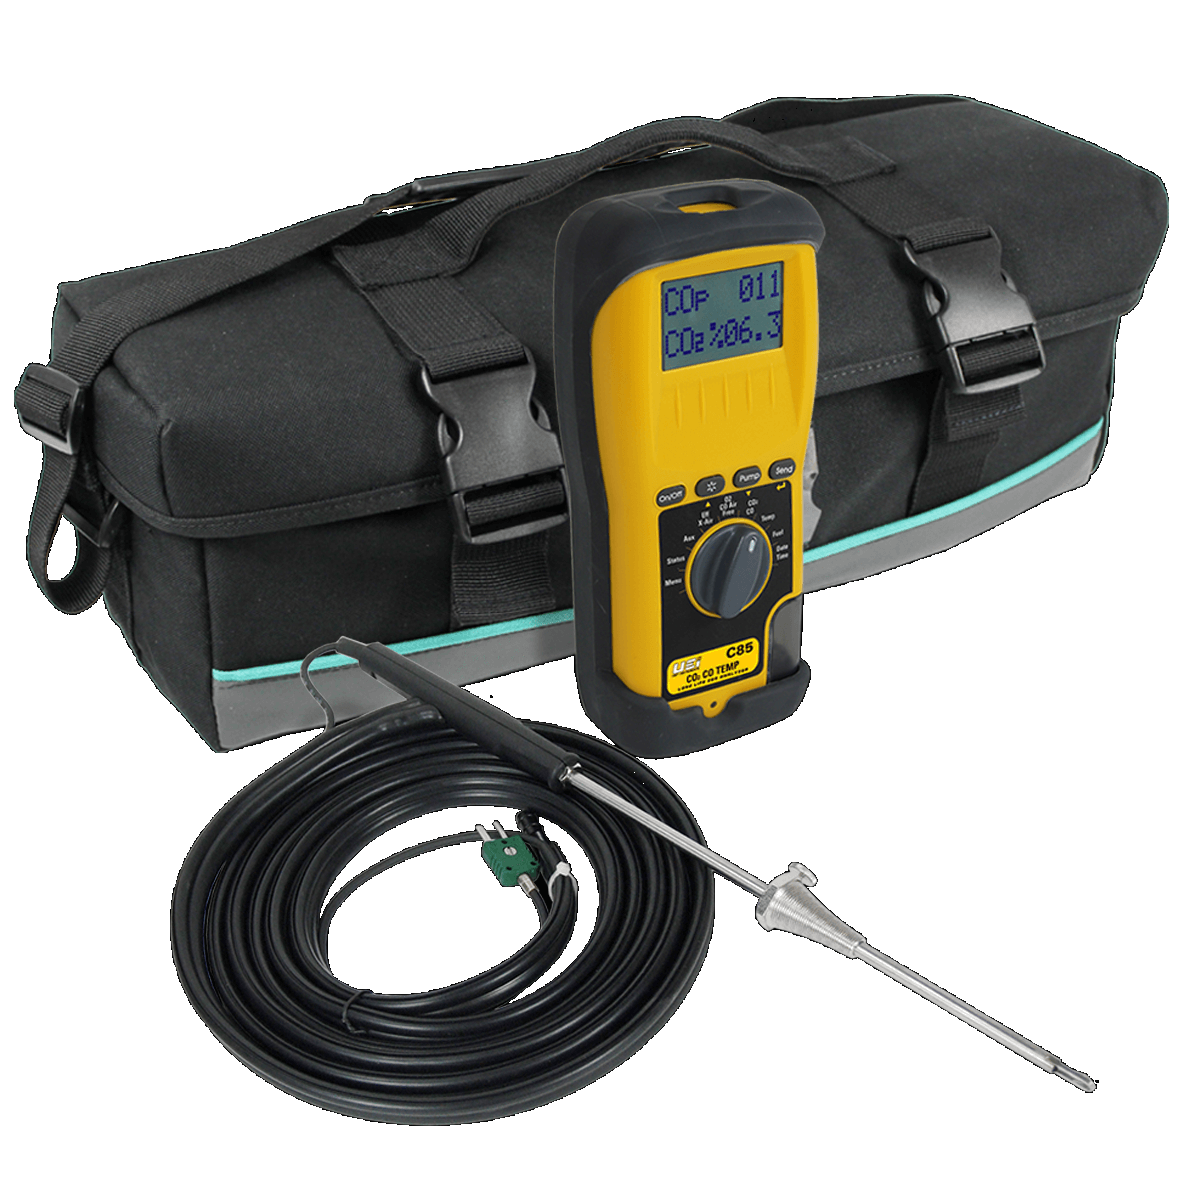 UEi C85 Combustion Analyzer with Long Lasting EOS Technology [Free 2nd Shipping]